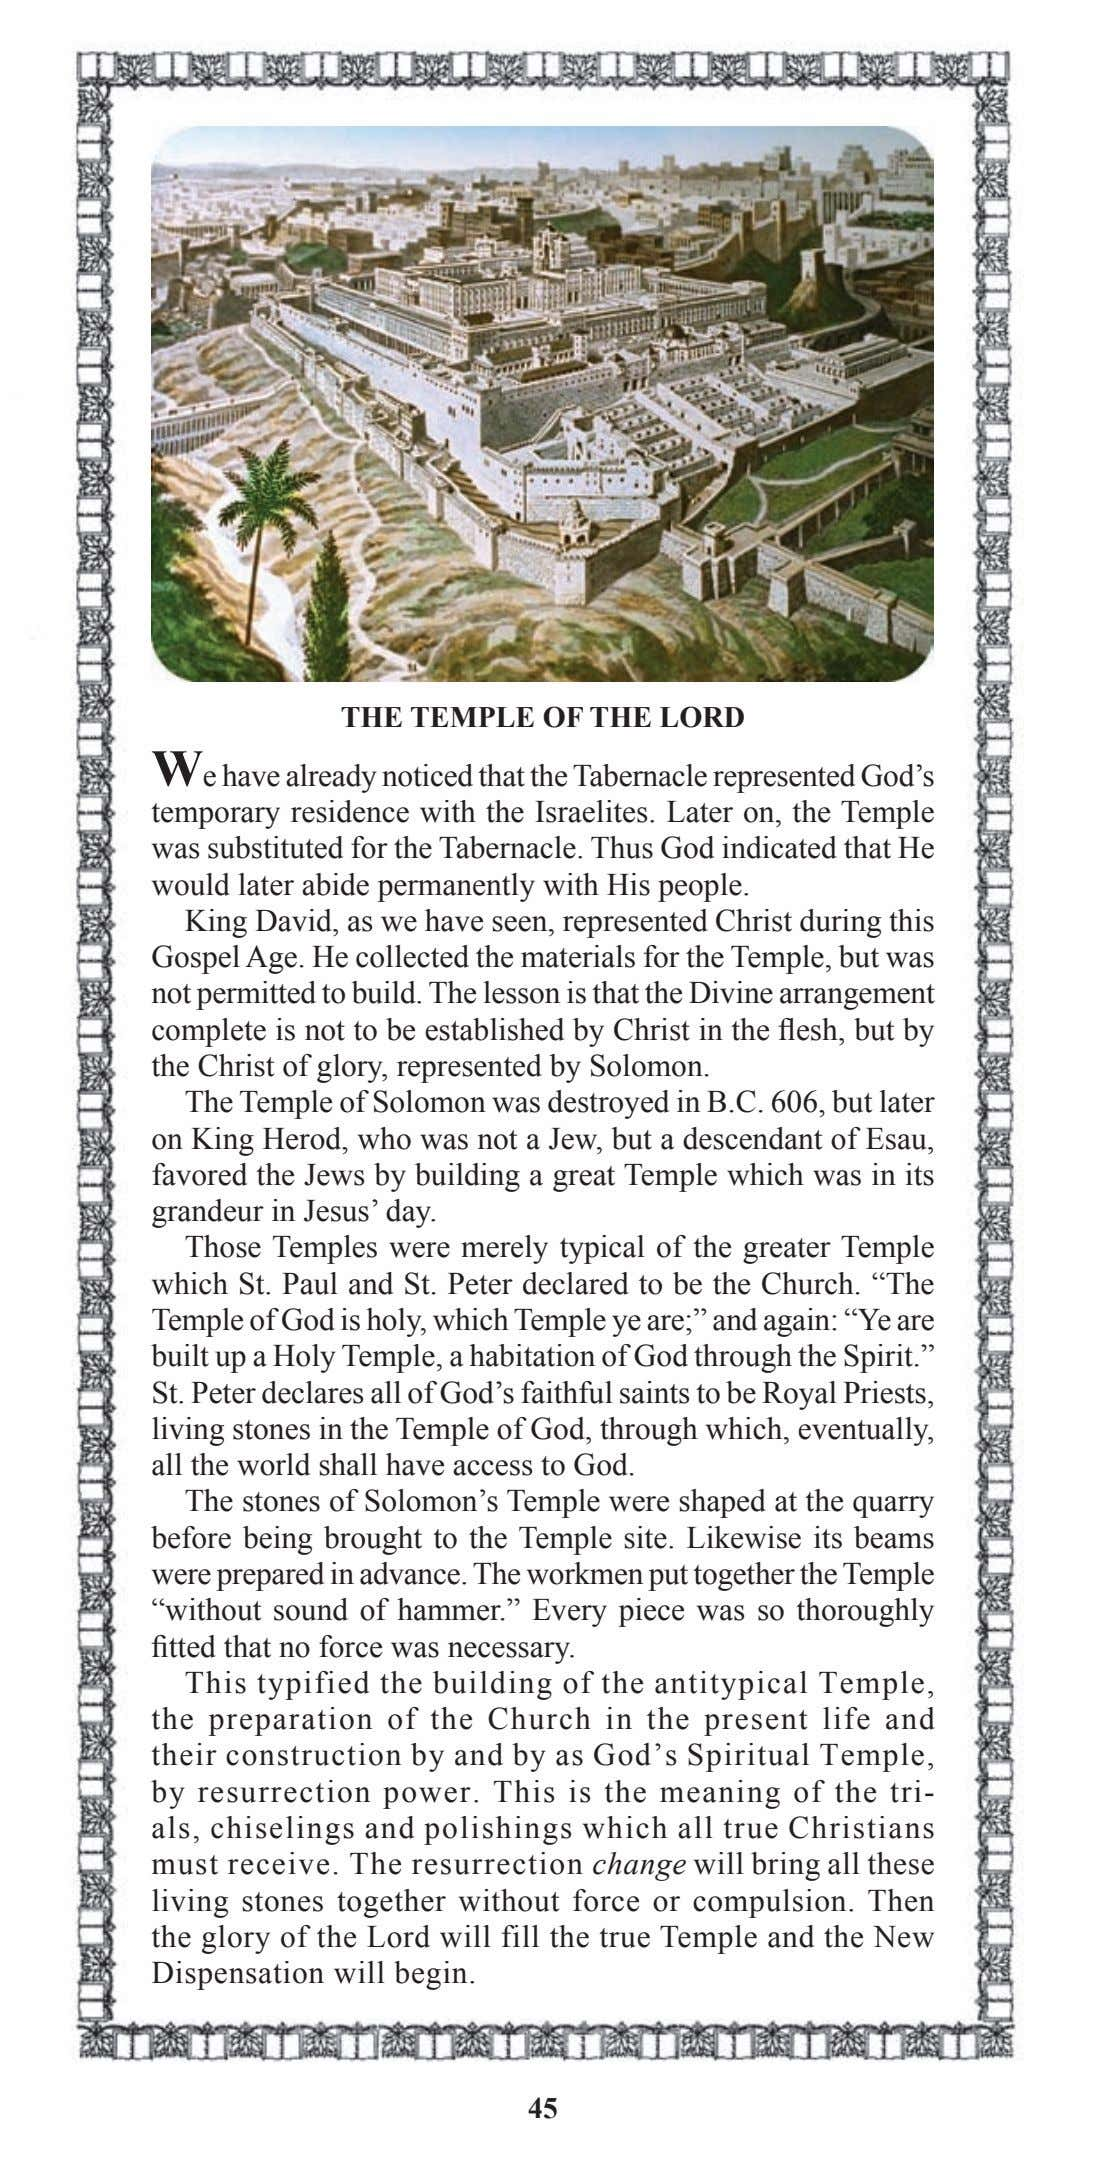 THE TEMPLE OF THE LORD We have already noticed that the Tabernacle represented God's temporary